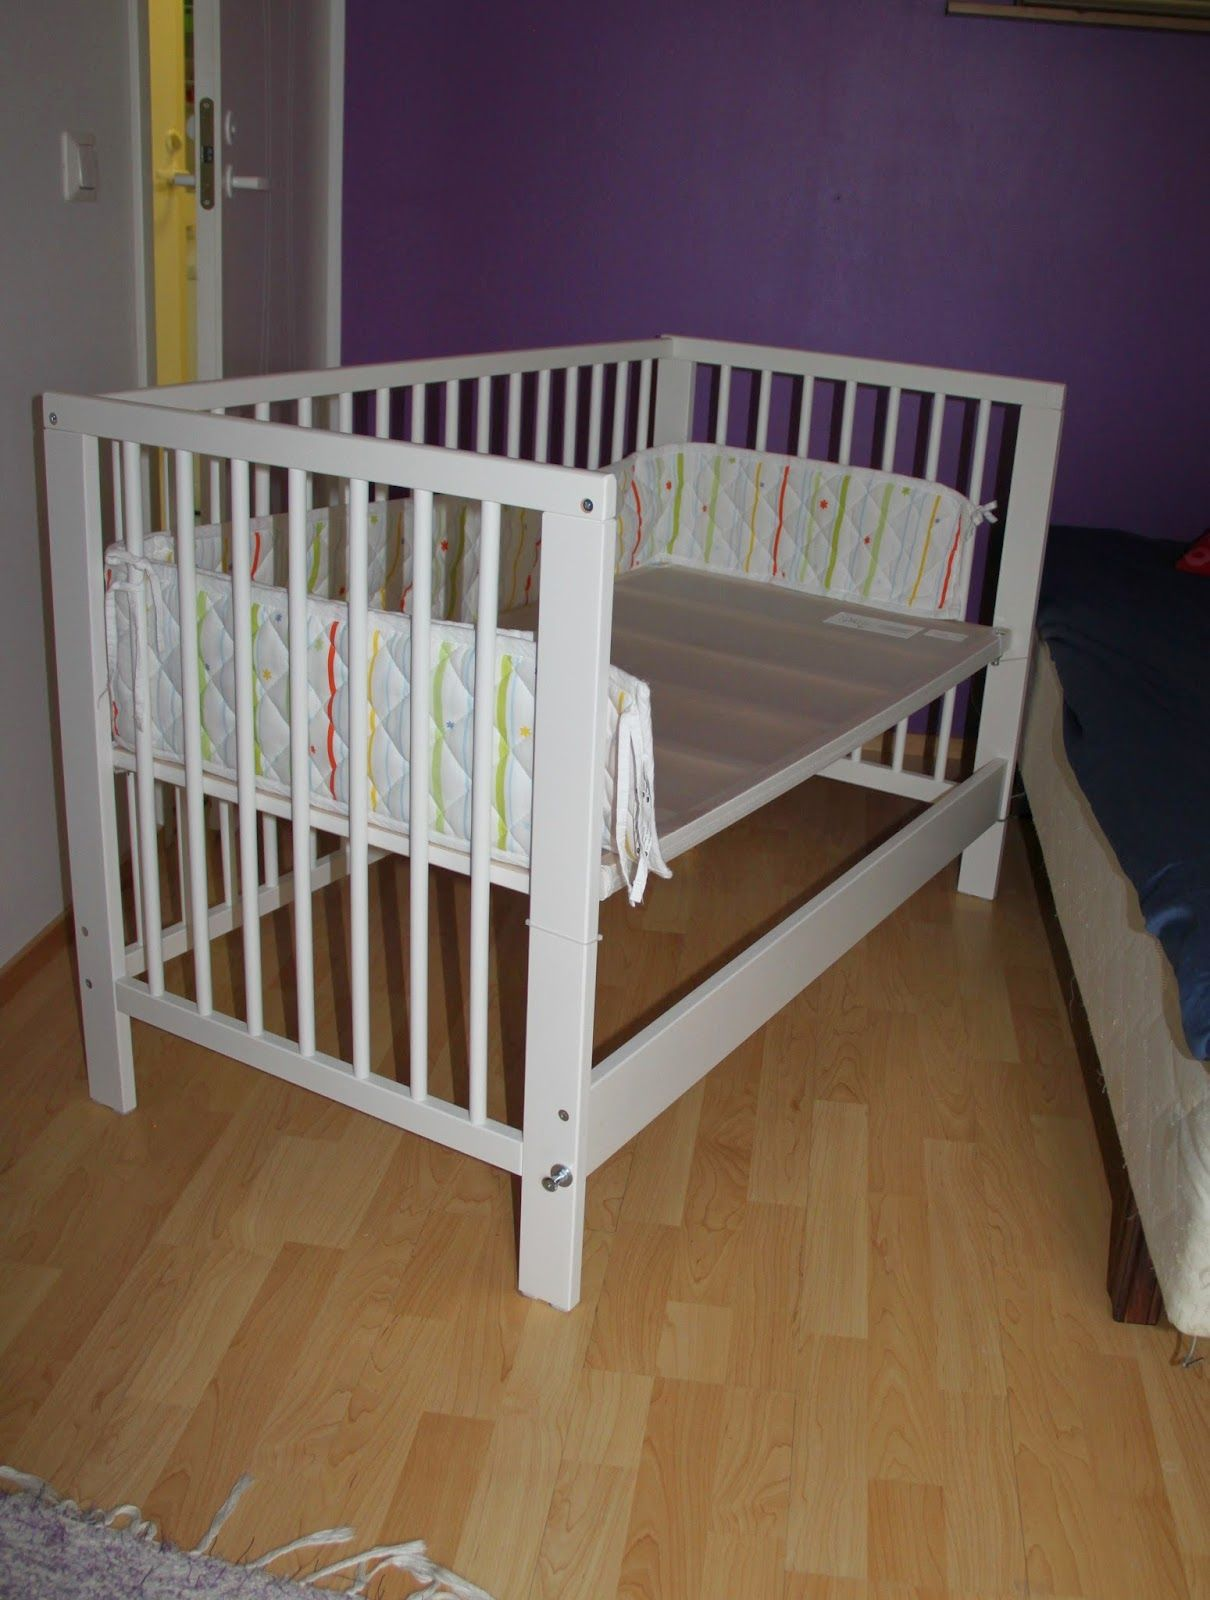 lind i and at furniture sets ikea size nursery diy cribs convertible babycribs awesome baby cheery to bedding craft crazy jenny lady large bemzo breathtaking hensvik of crib davinci